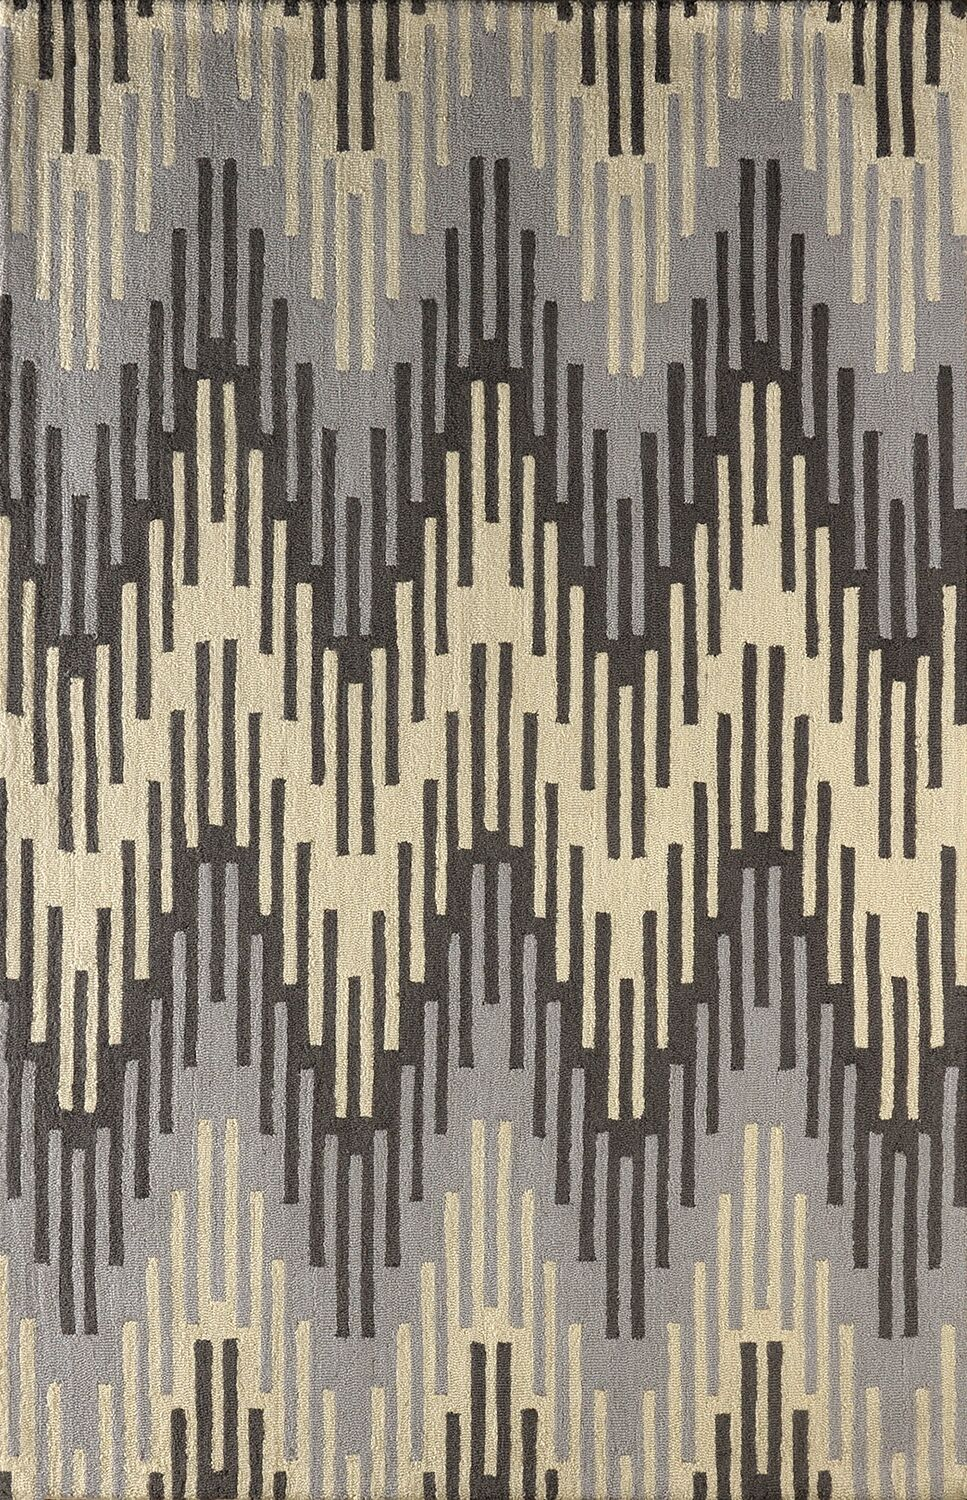 Flanary Hand-Tufted Wool Frost Gray/Ivory Area Rug Rug Size: Rectangle 4' x 6'